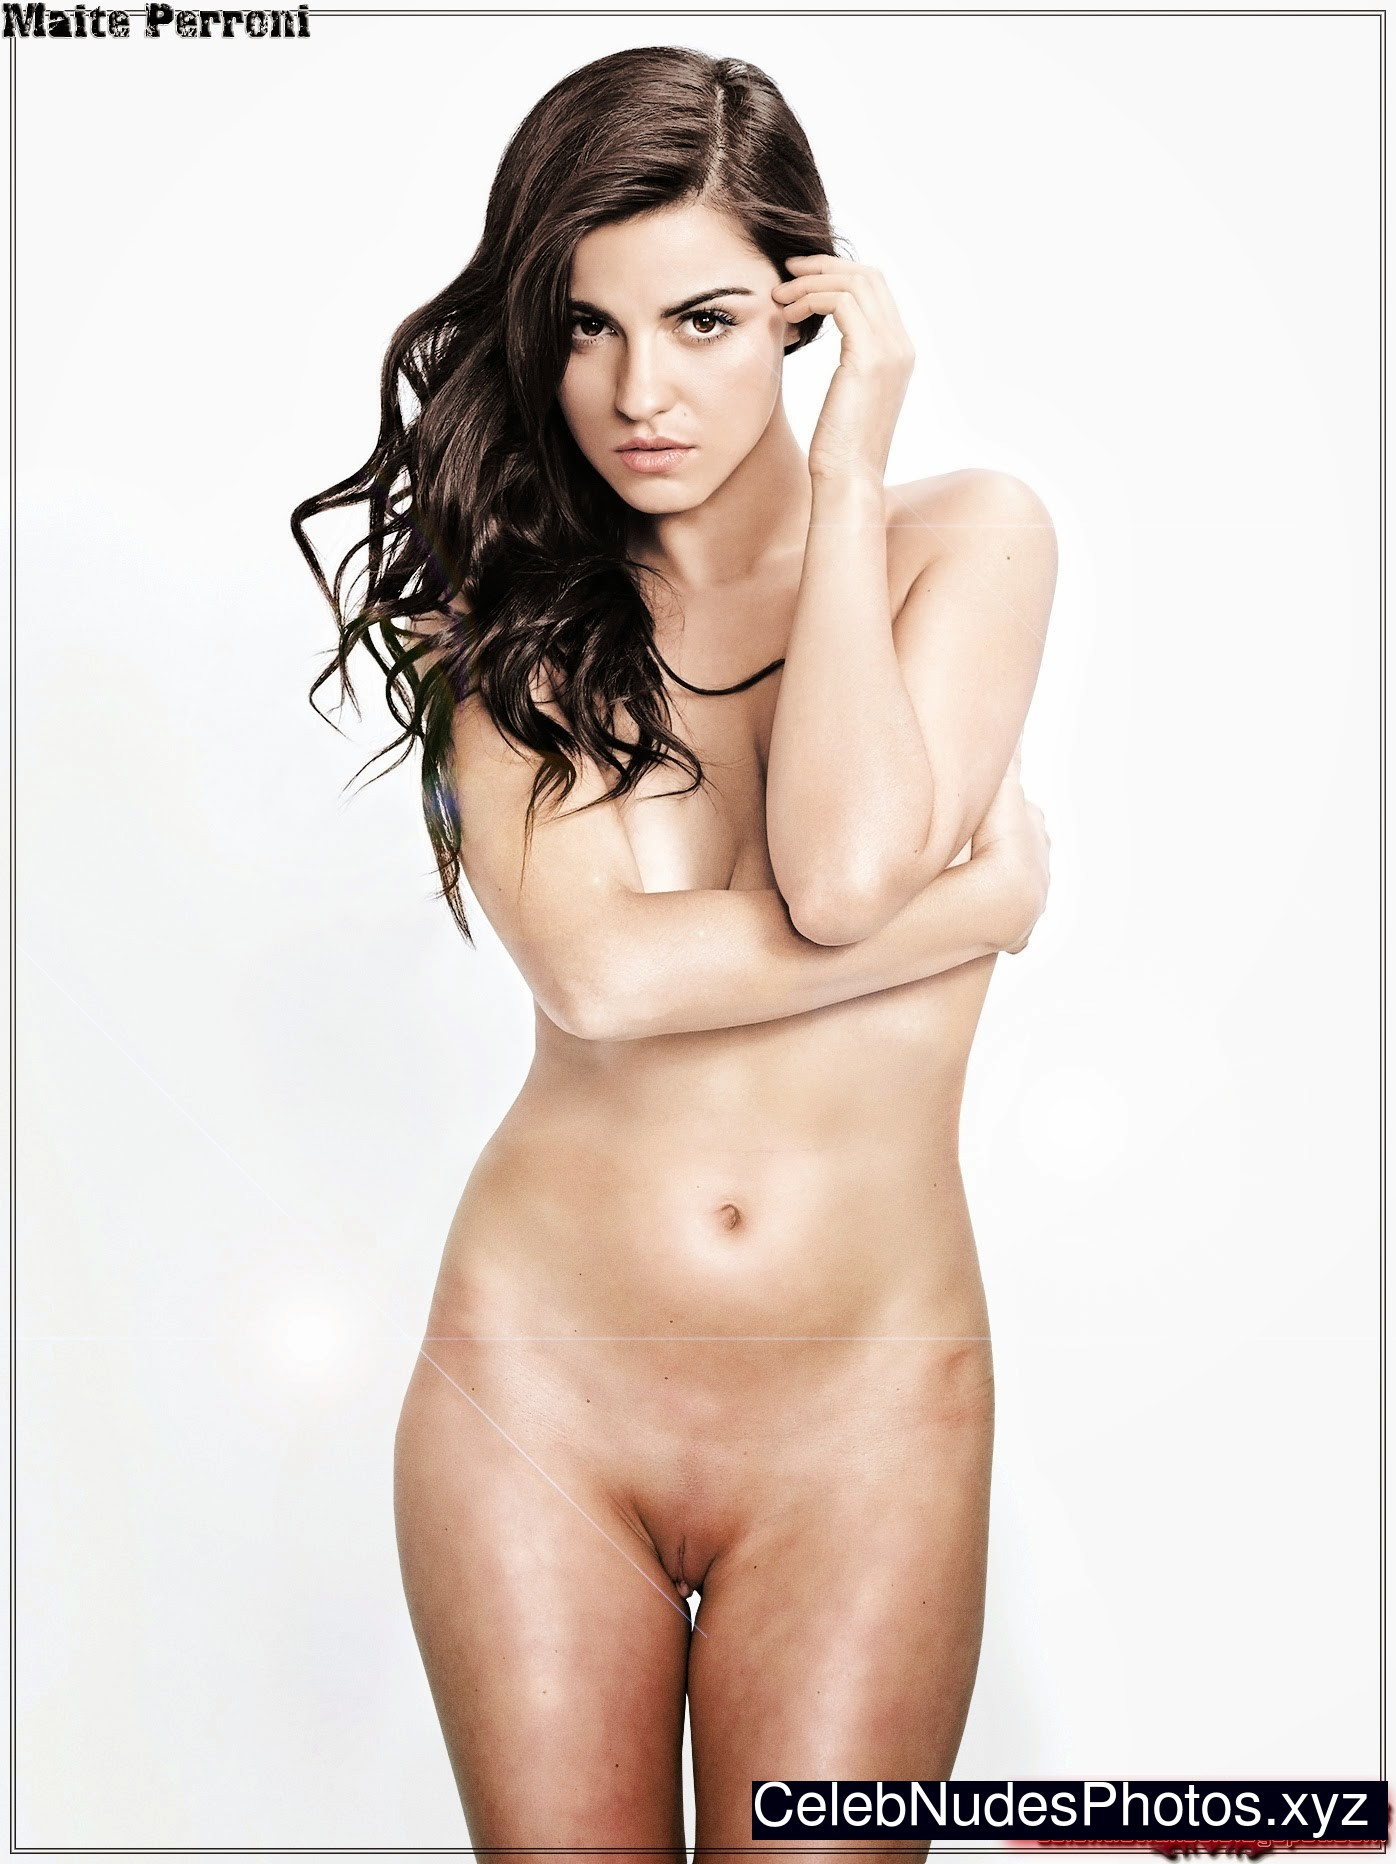 Maite Perroni Newest Celebrity Nude sexy 1